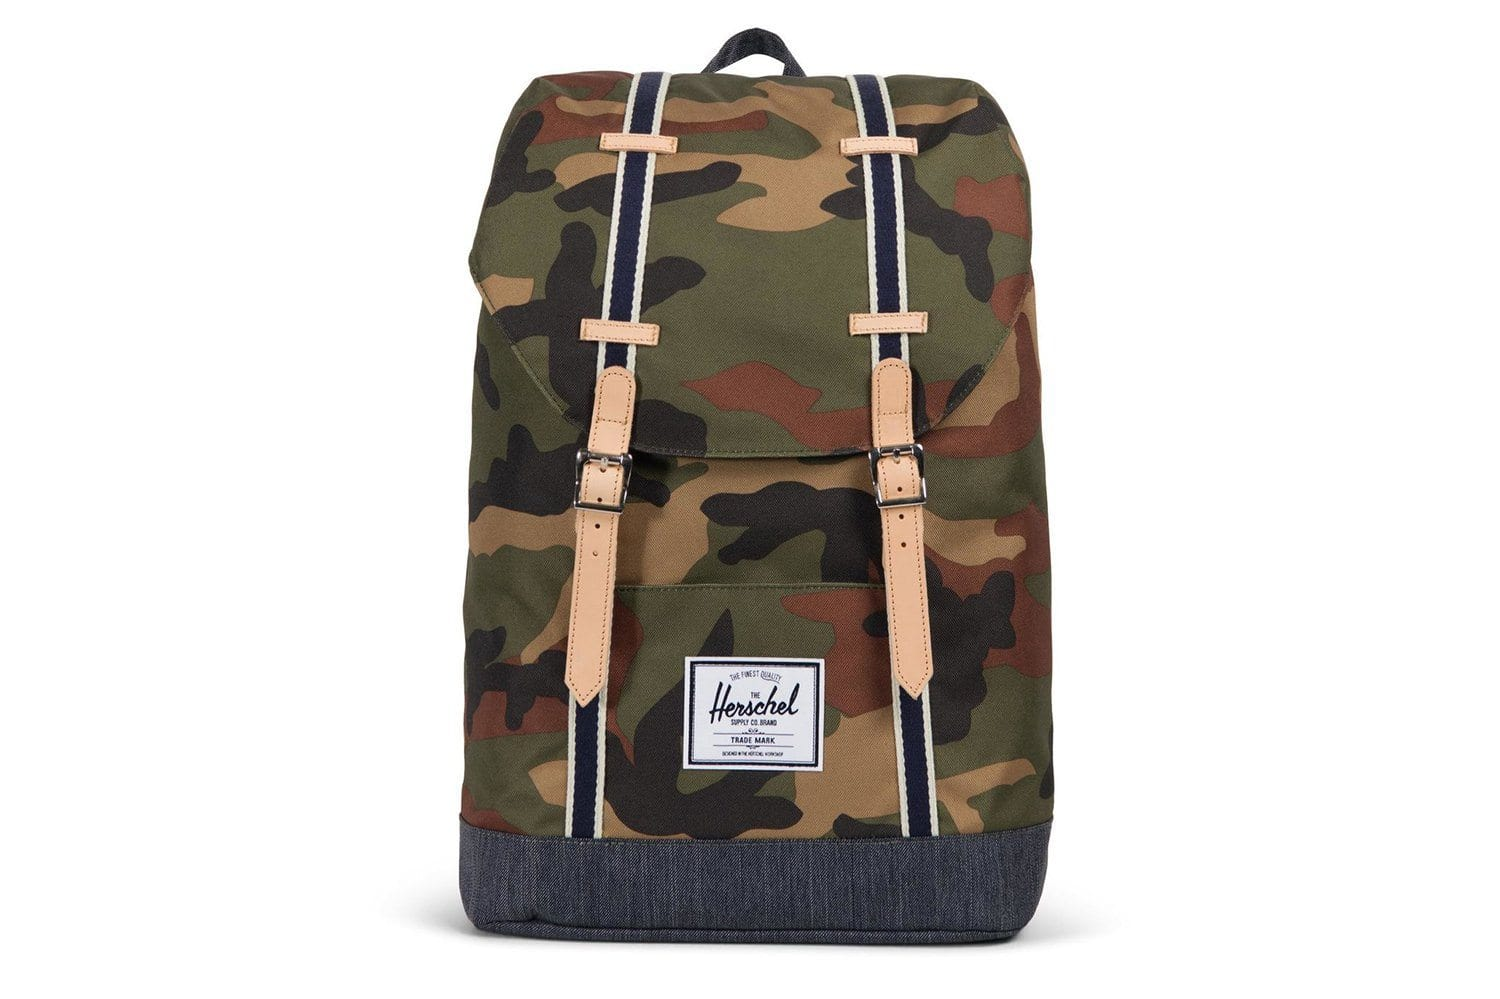 RETREAT 600D POLY BAGS HERSCHEL